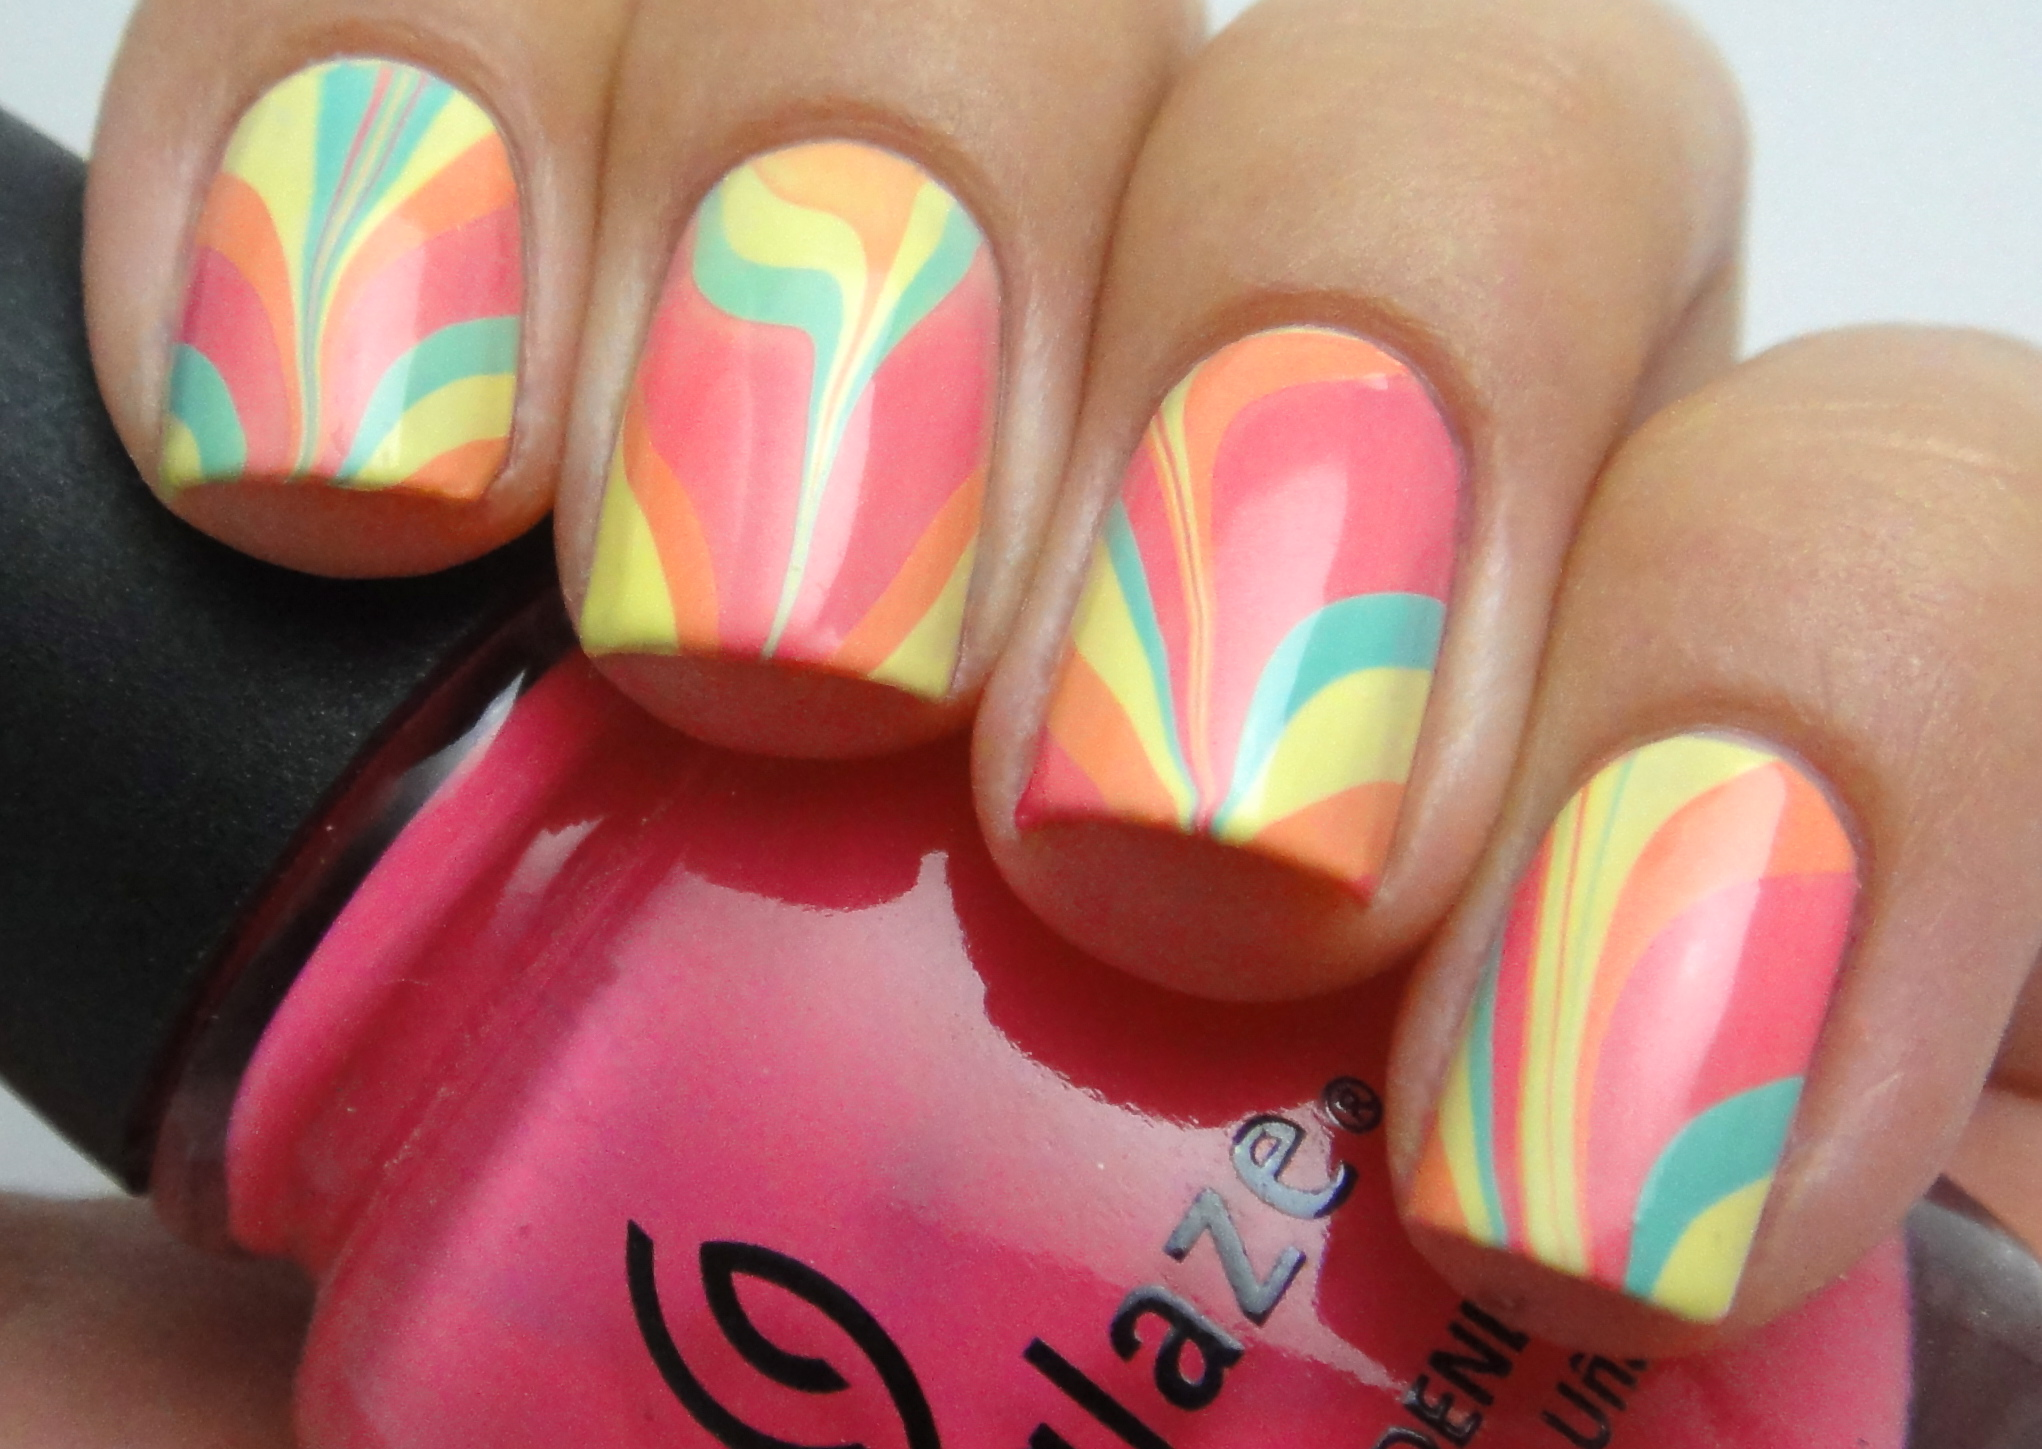 How To Get Water Marble Nail Art At Home Stylecaster Water Nail Art